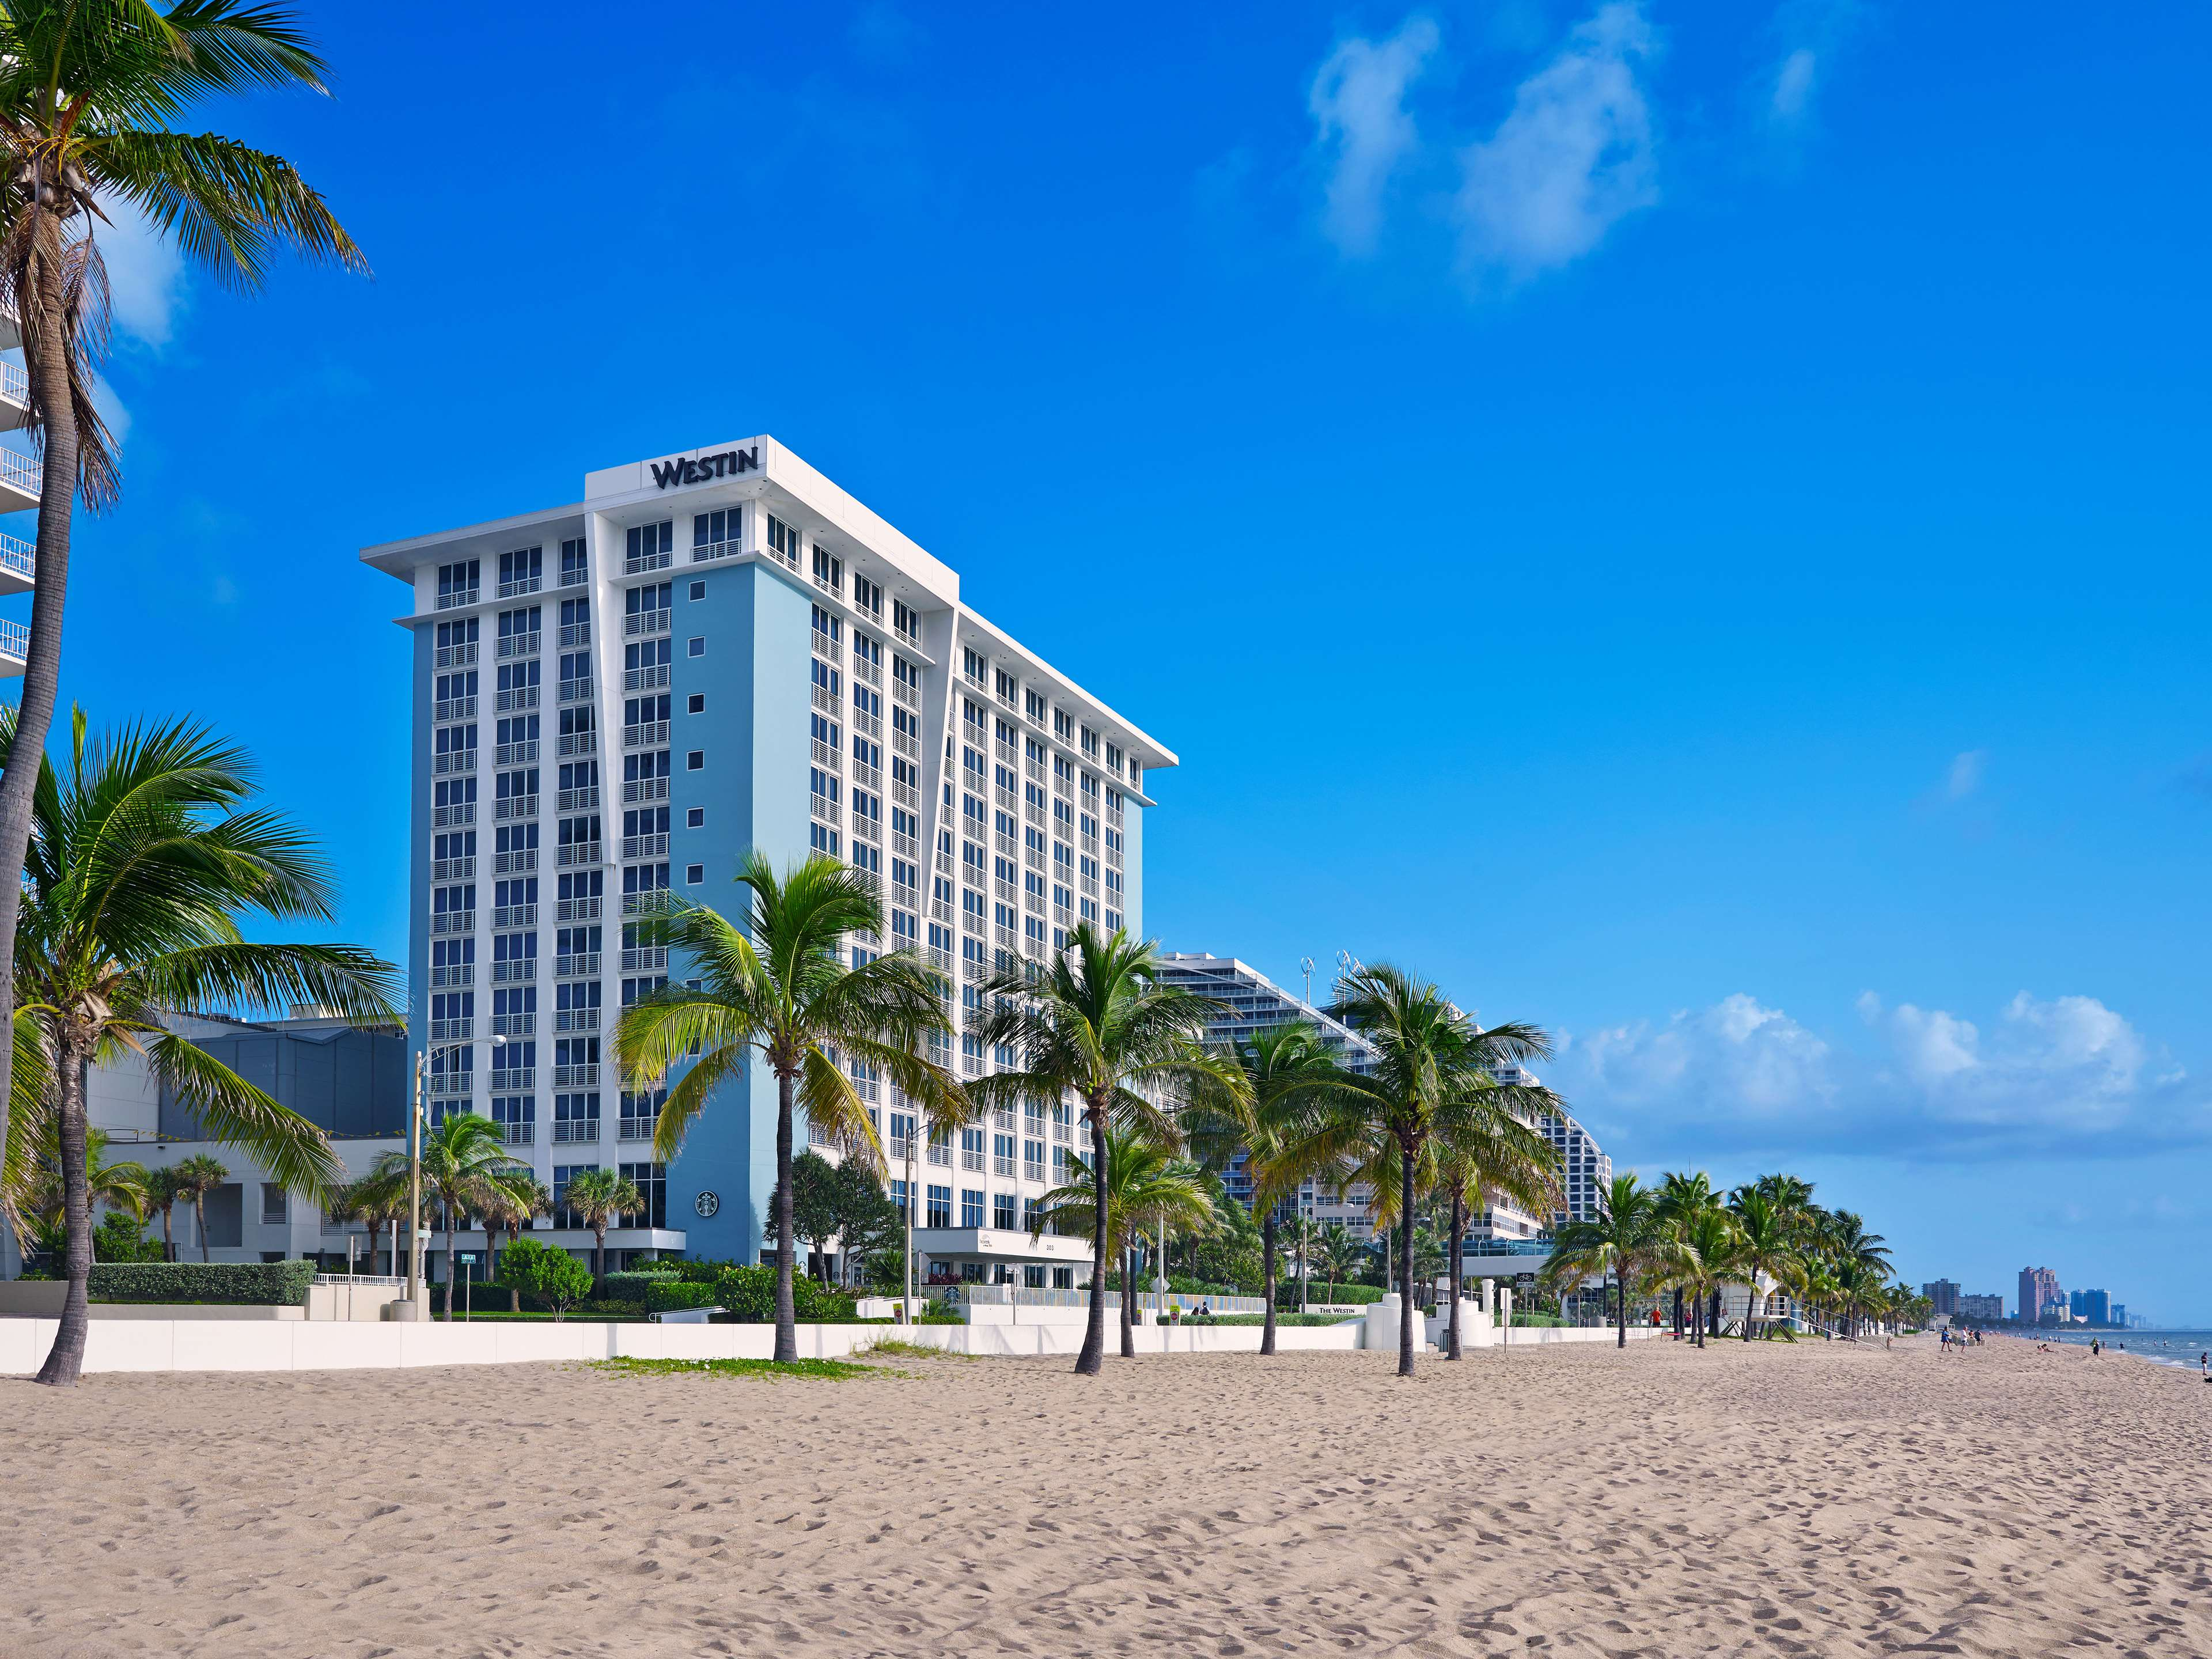 The Westin Fort Lauderdale Beach Resort image 0